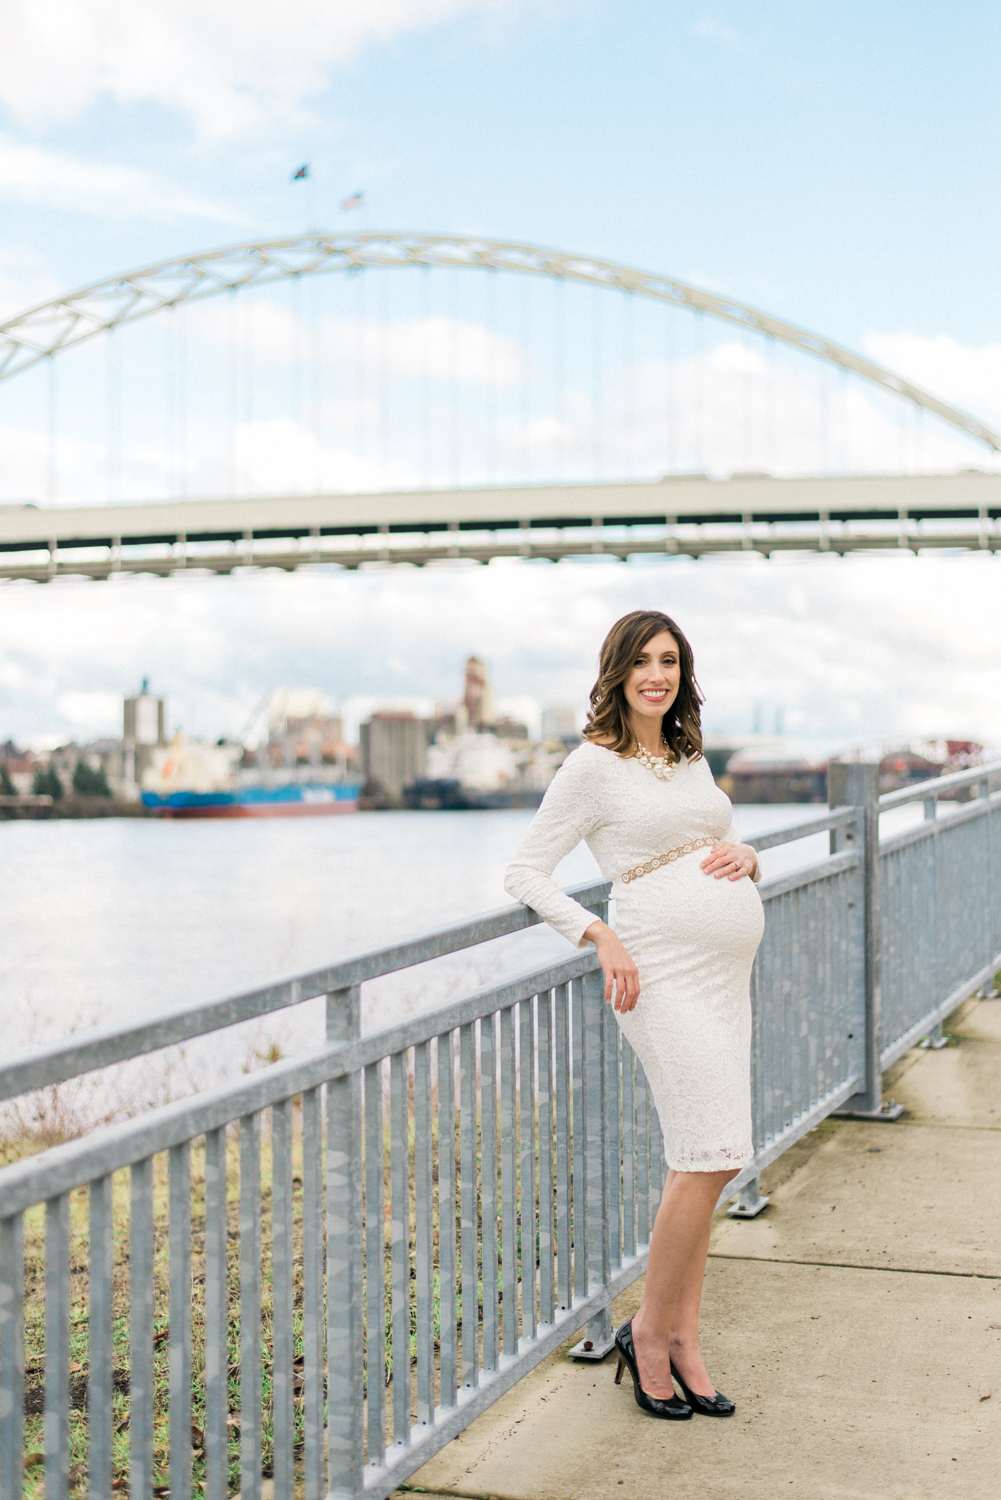 portland-maternity-photographer-fremont-bridge-shelley-marie-photo-8